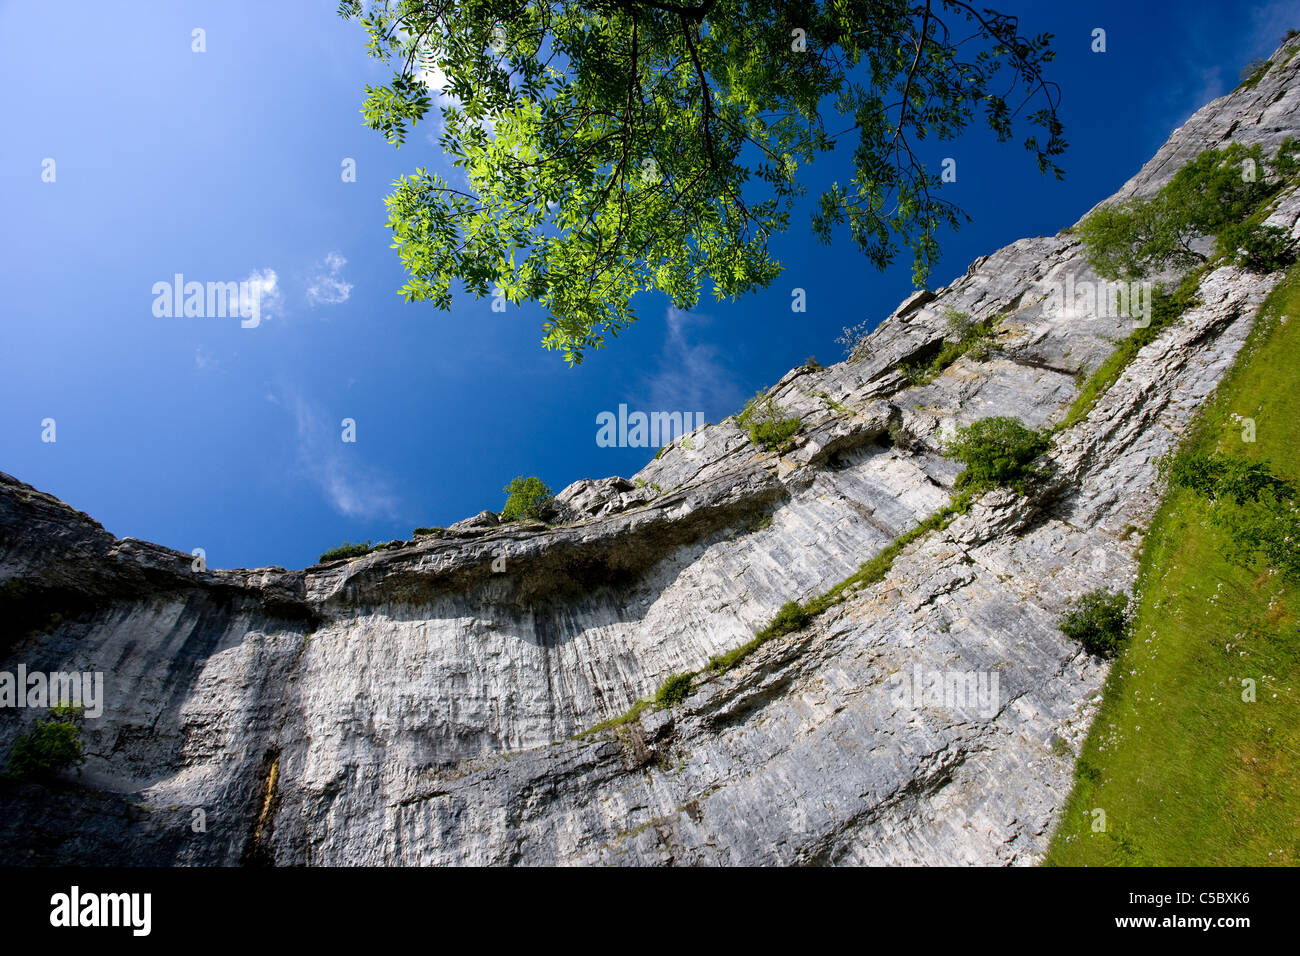 Looking up at the amphitheatre shaped cliffs of Malham Cove, Malhamdale, Yorkshire Dales - Stock Image